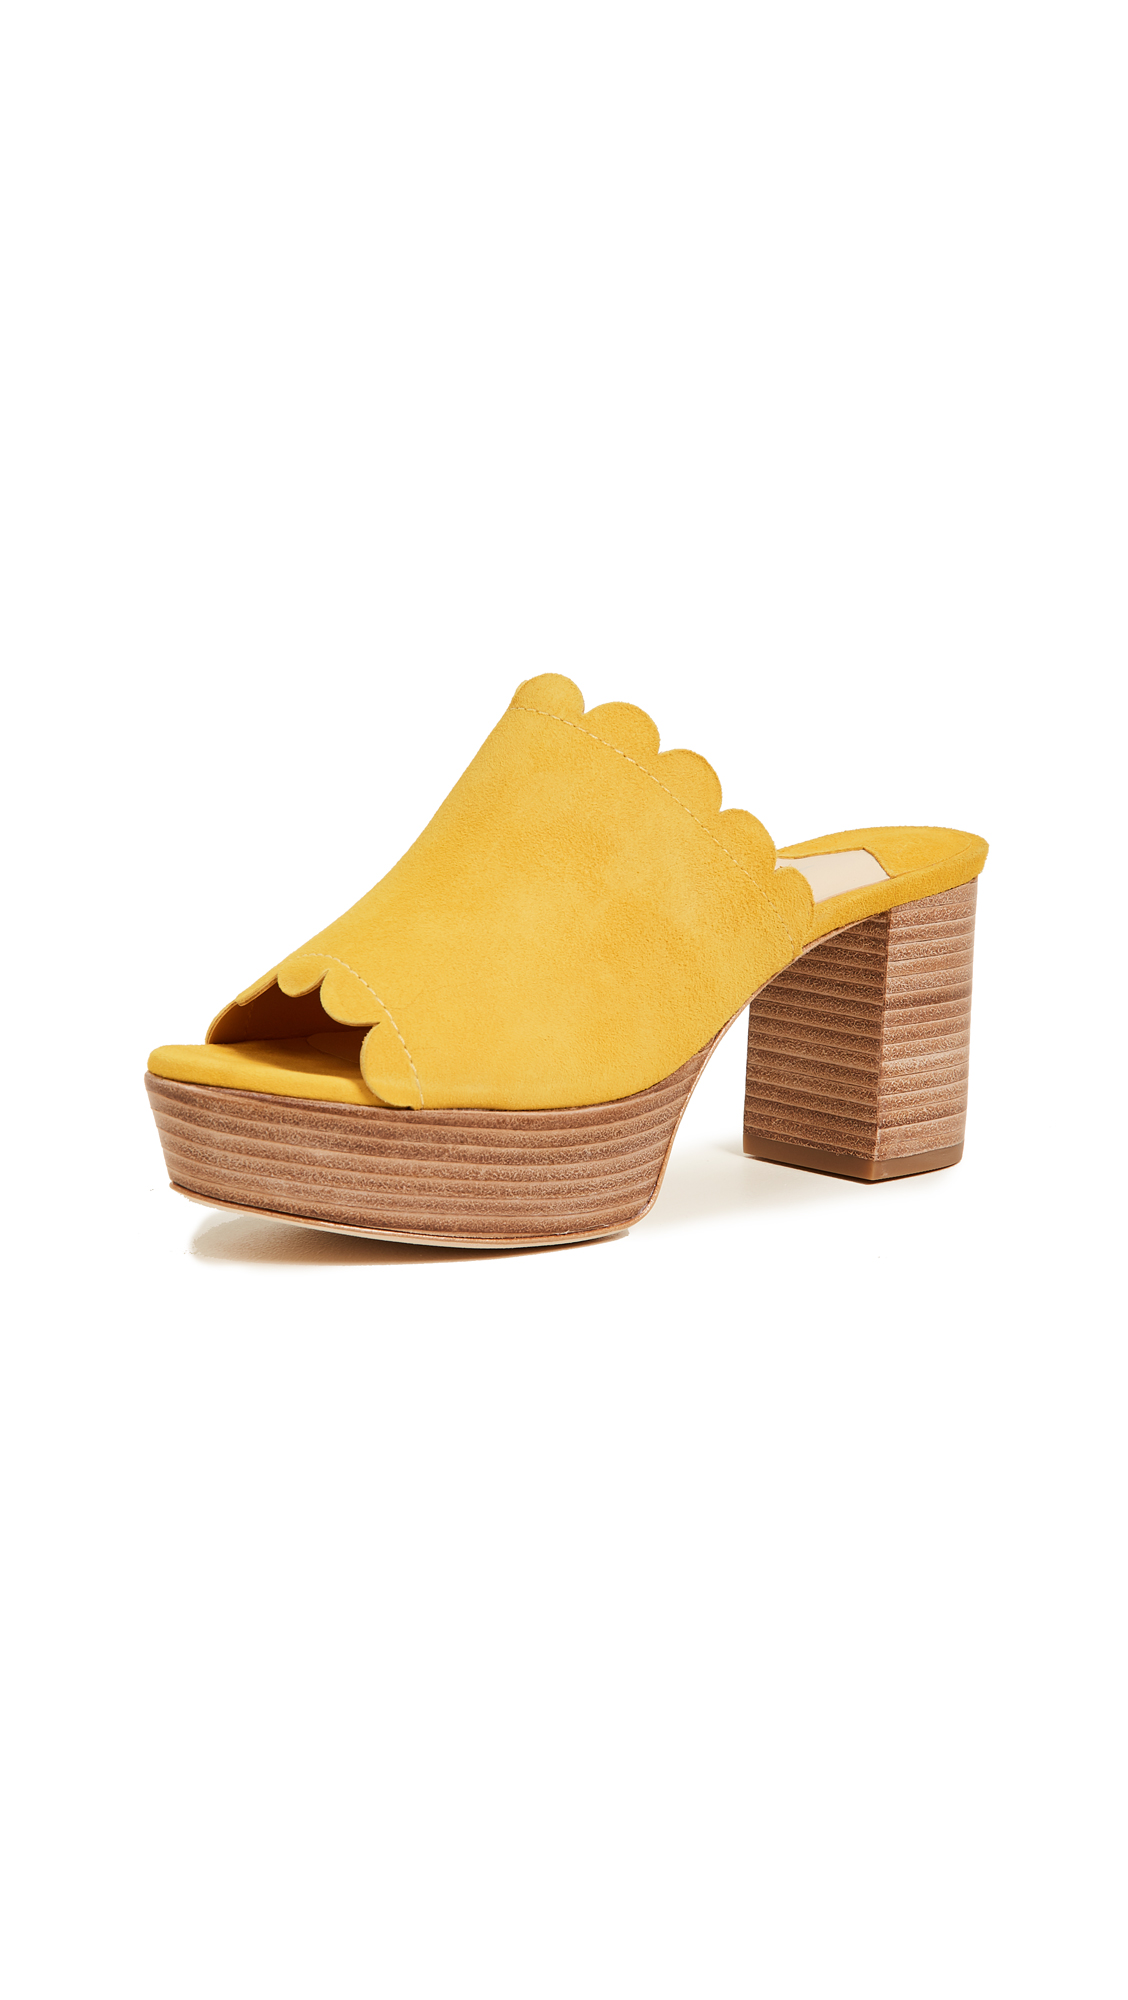 Isa Tapia Palmas Platform Sandals - Canary Yellow